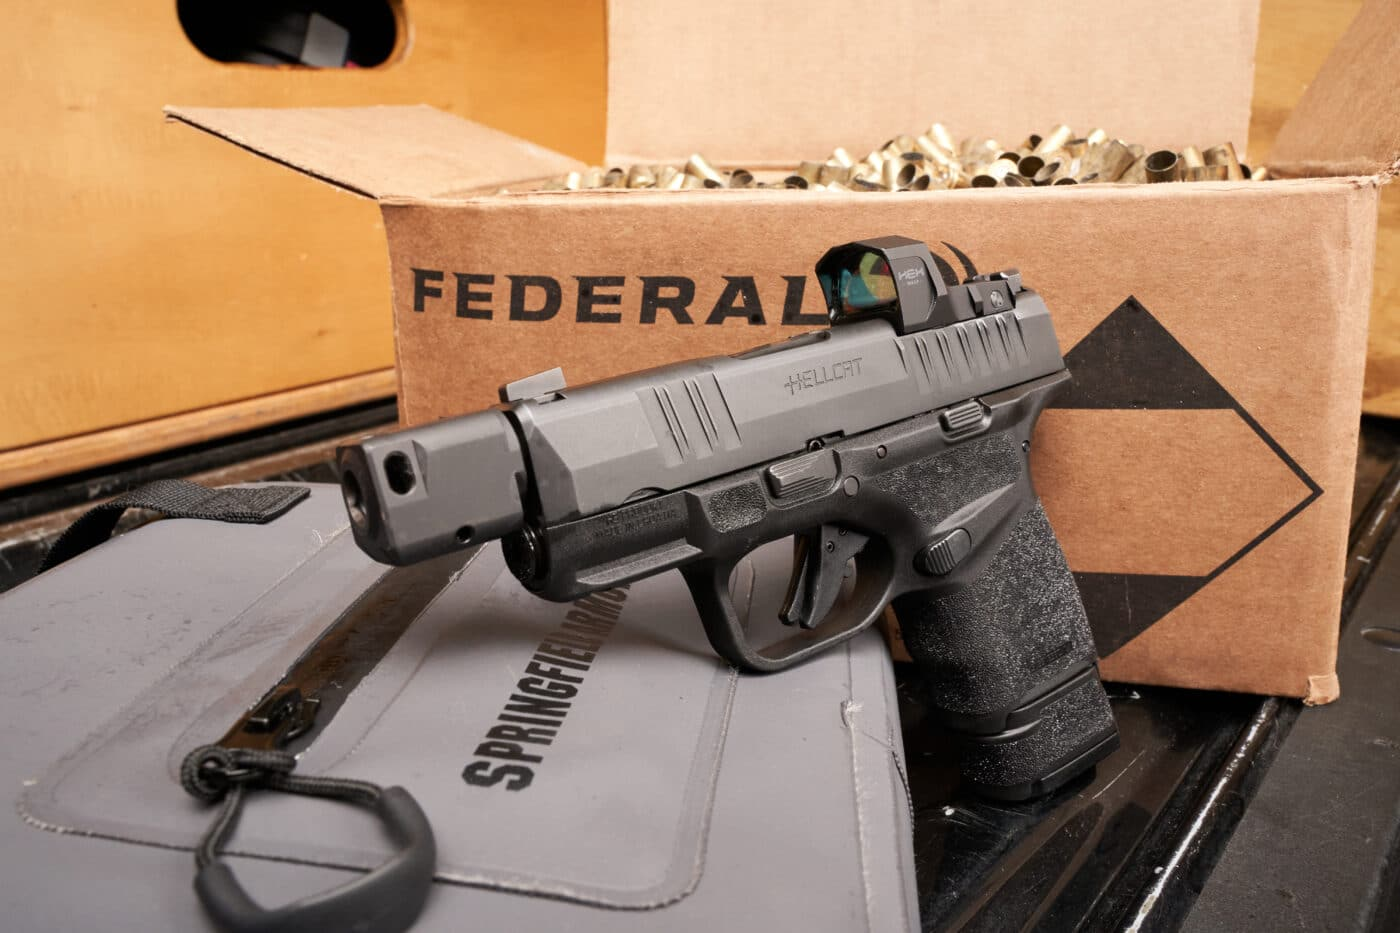 HEX Wasp optic on Hellcat pistol with federal ammo shot during testing